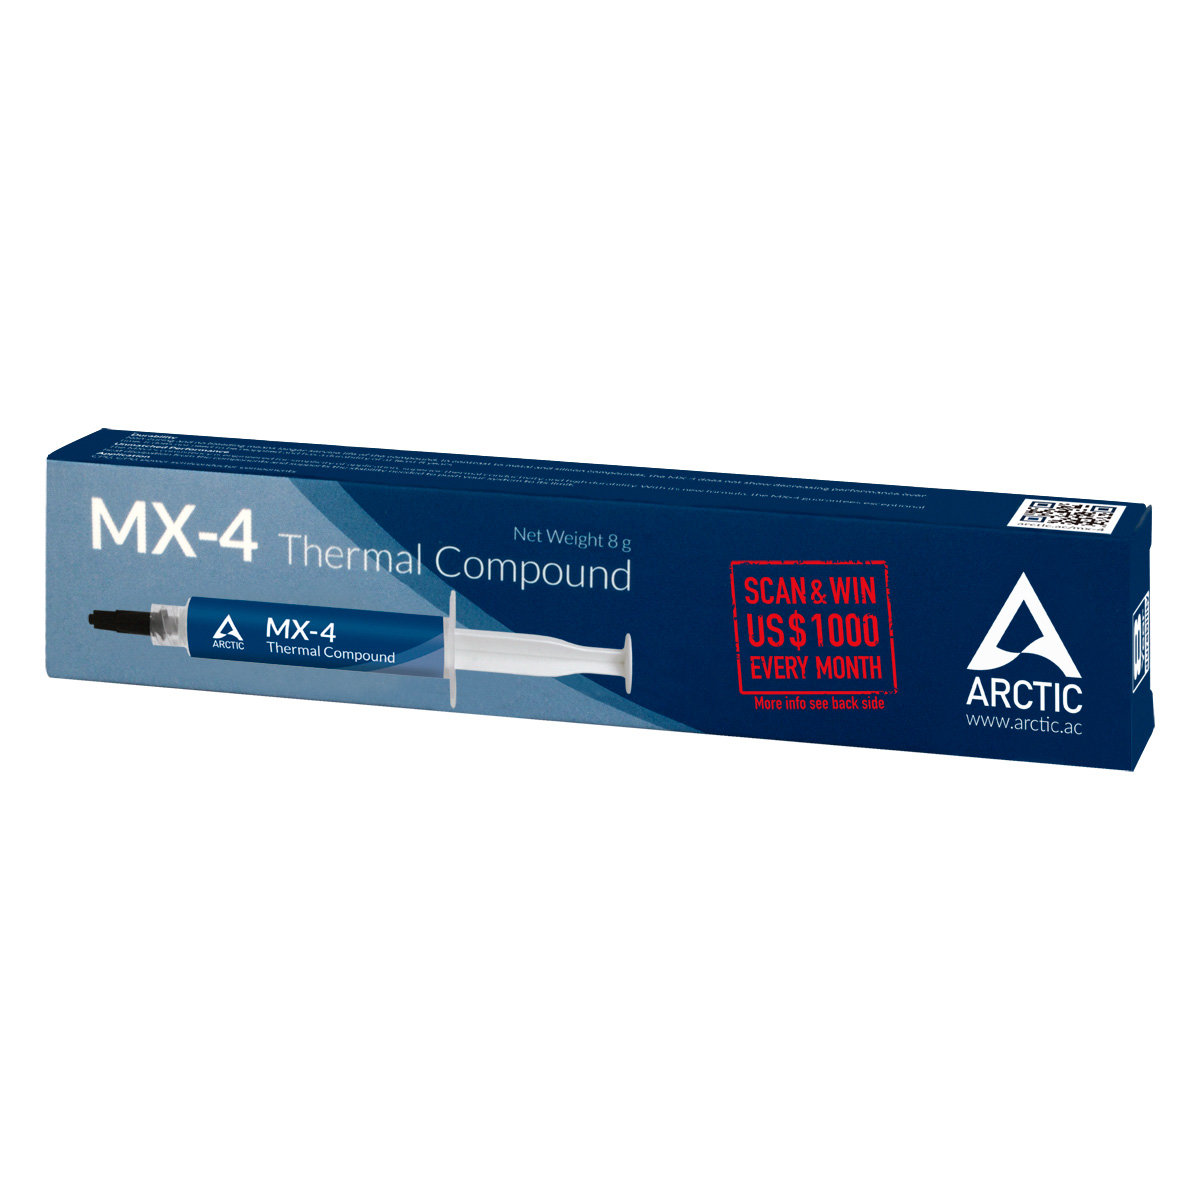 Highest Performance Thermal Compound ARCTIC MX-4 (8 g) Packaging Front View